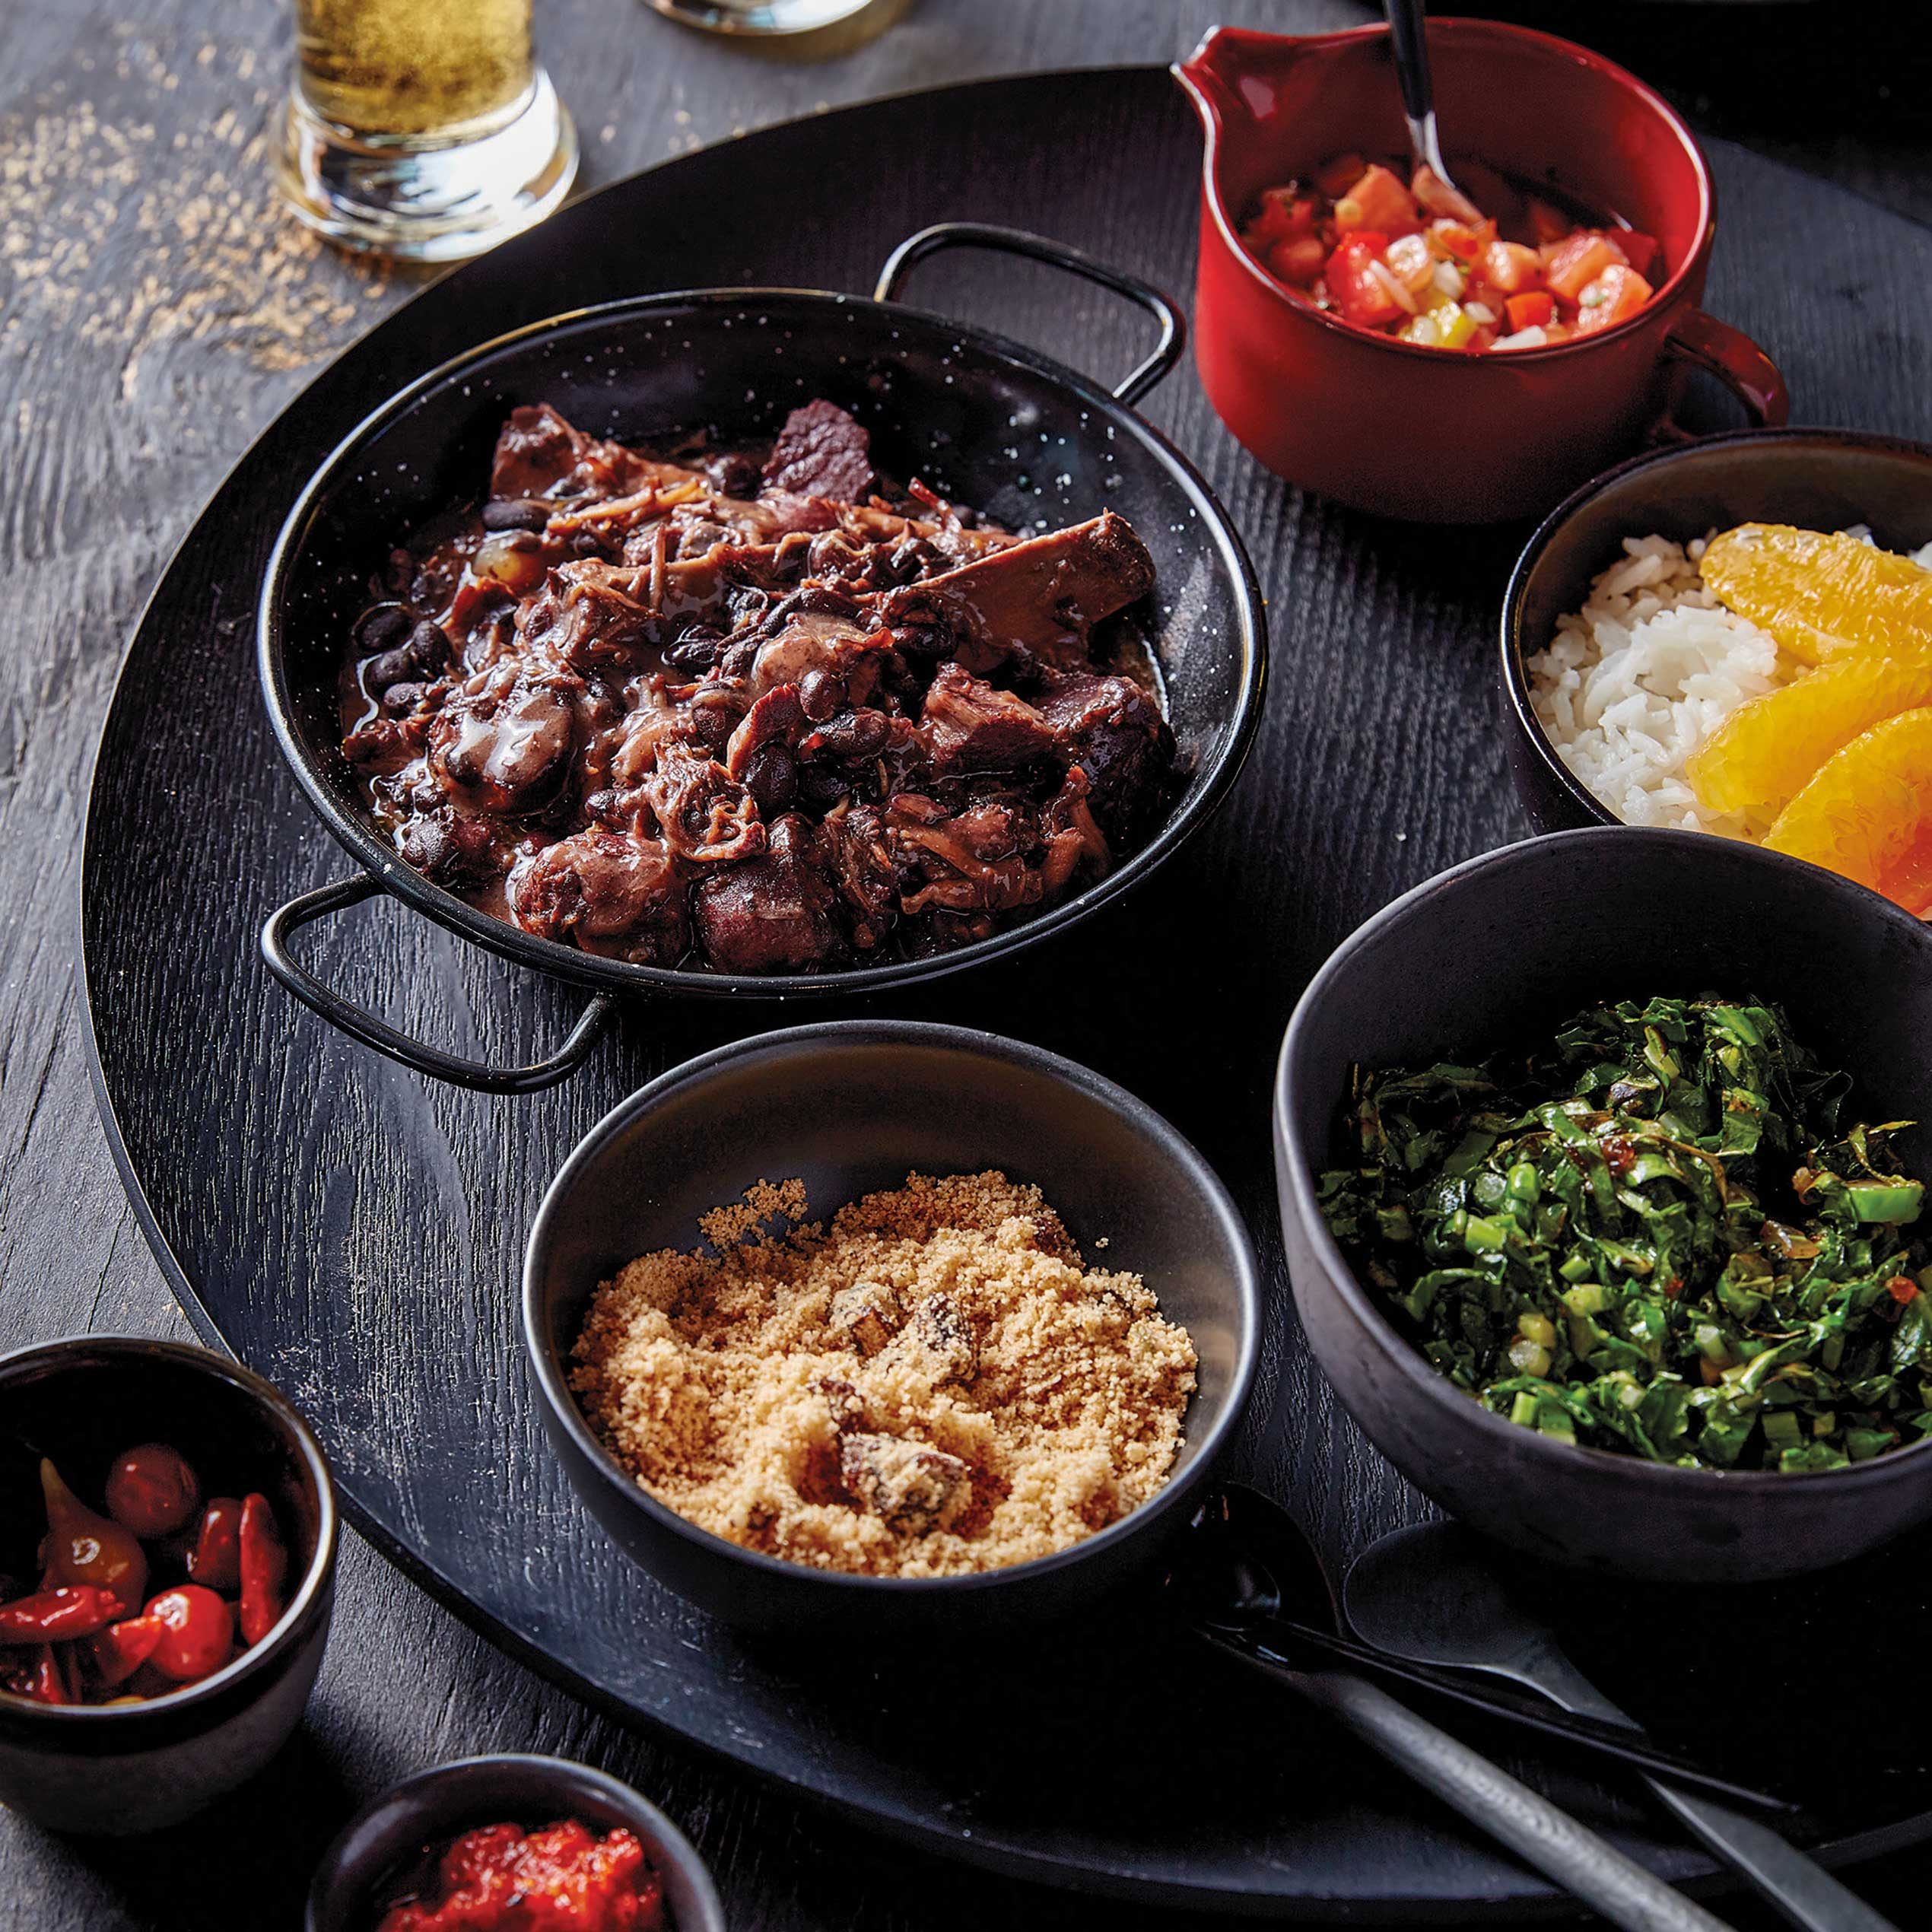 RECIPE: Feijoada Completa • DUO Magazine